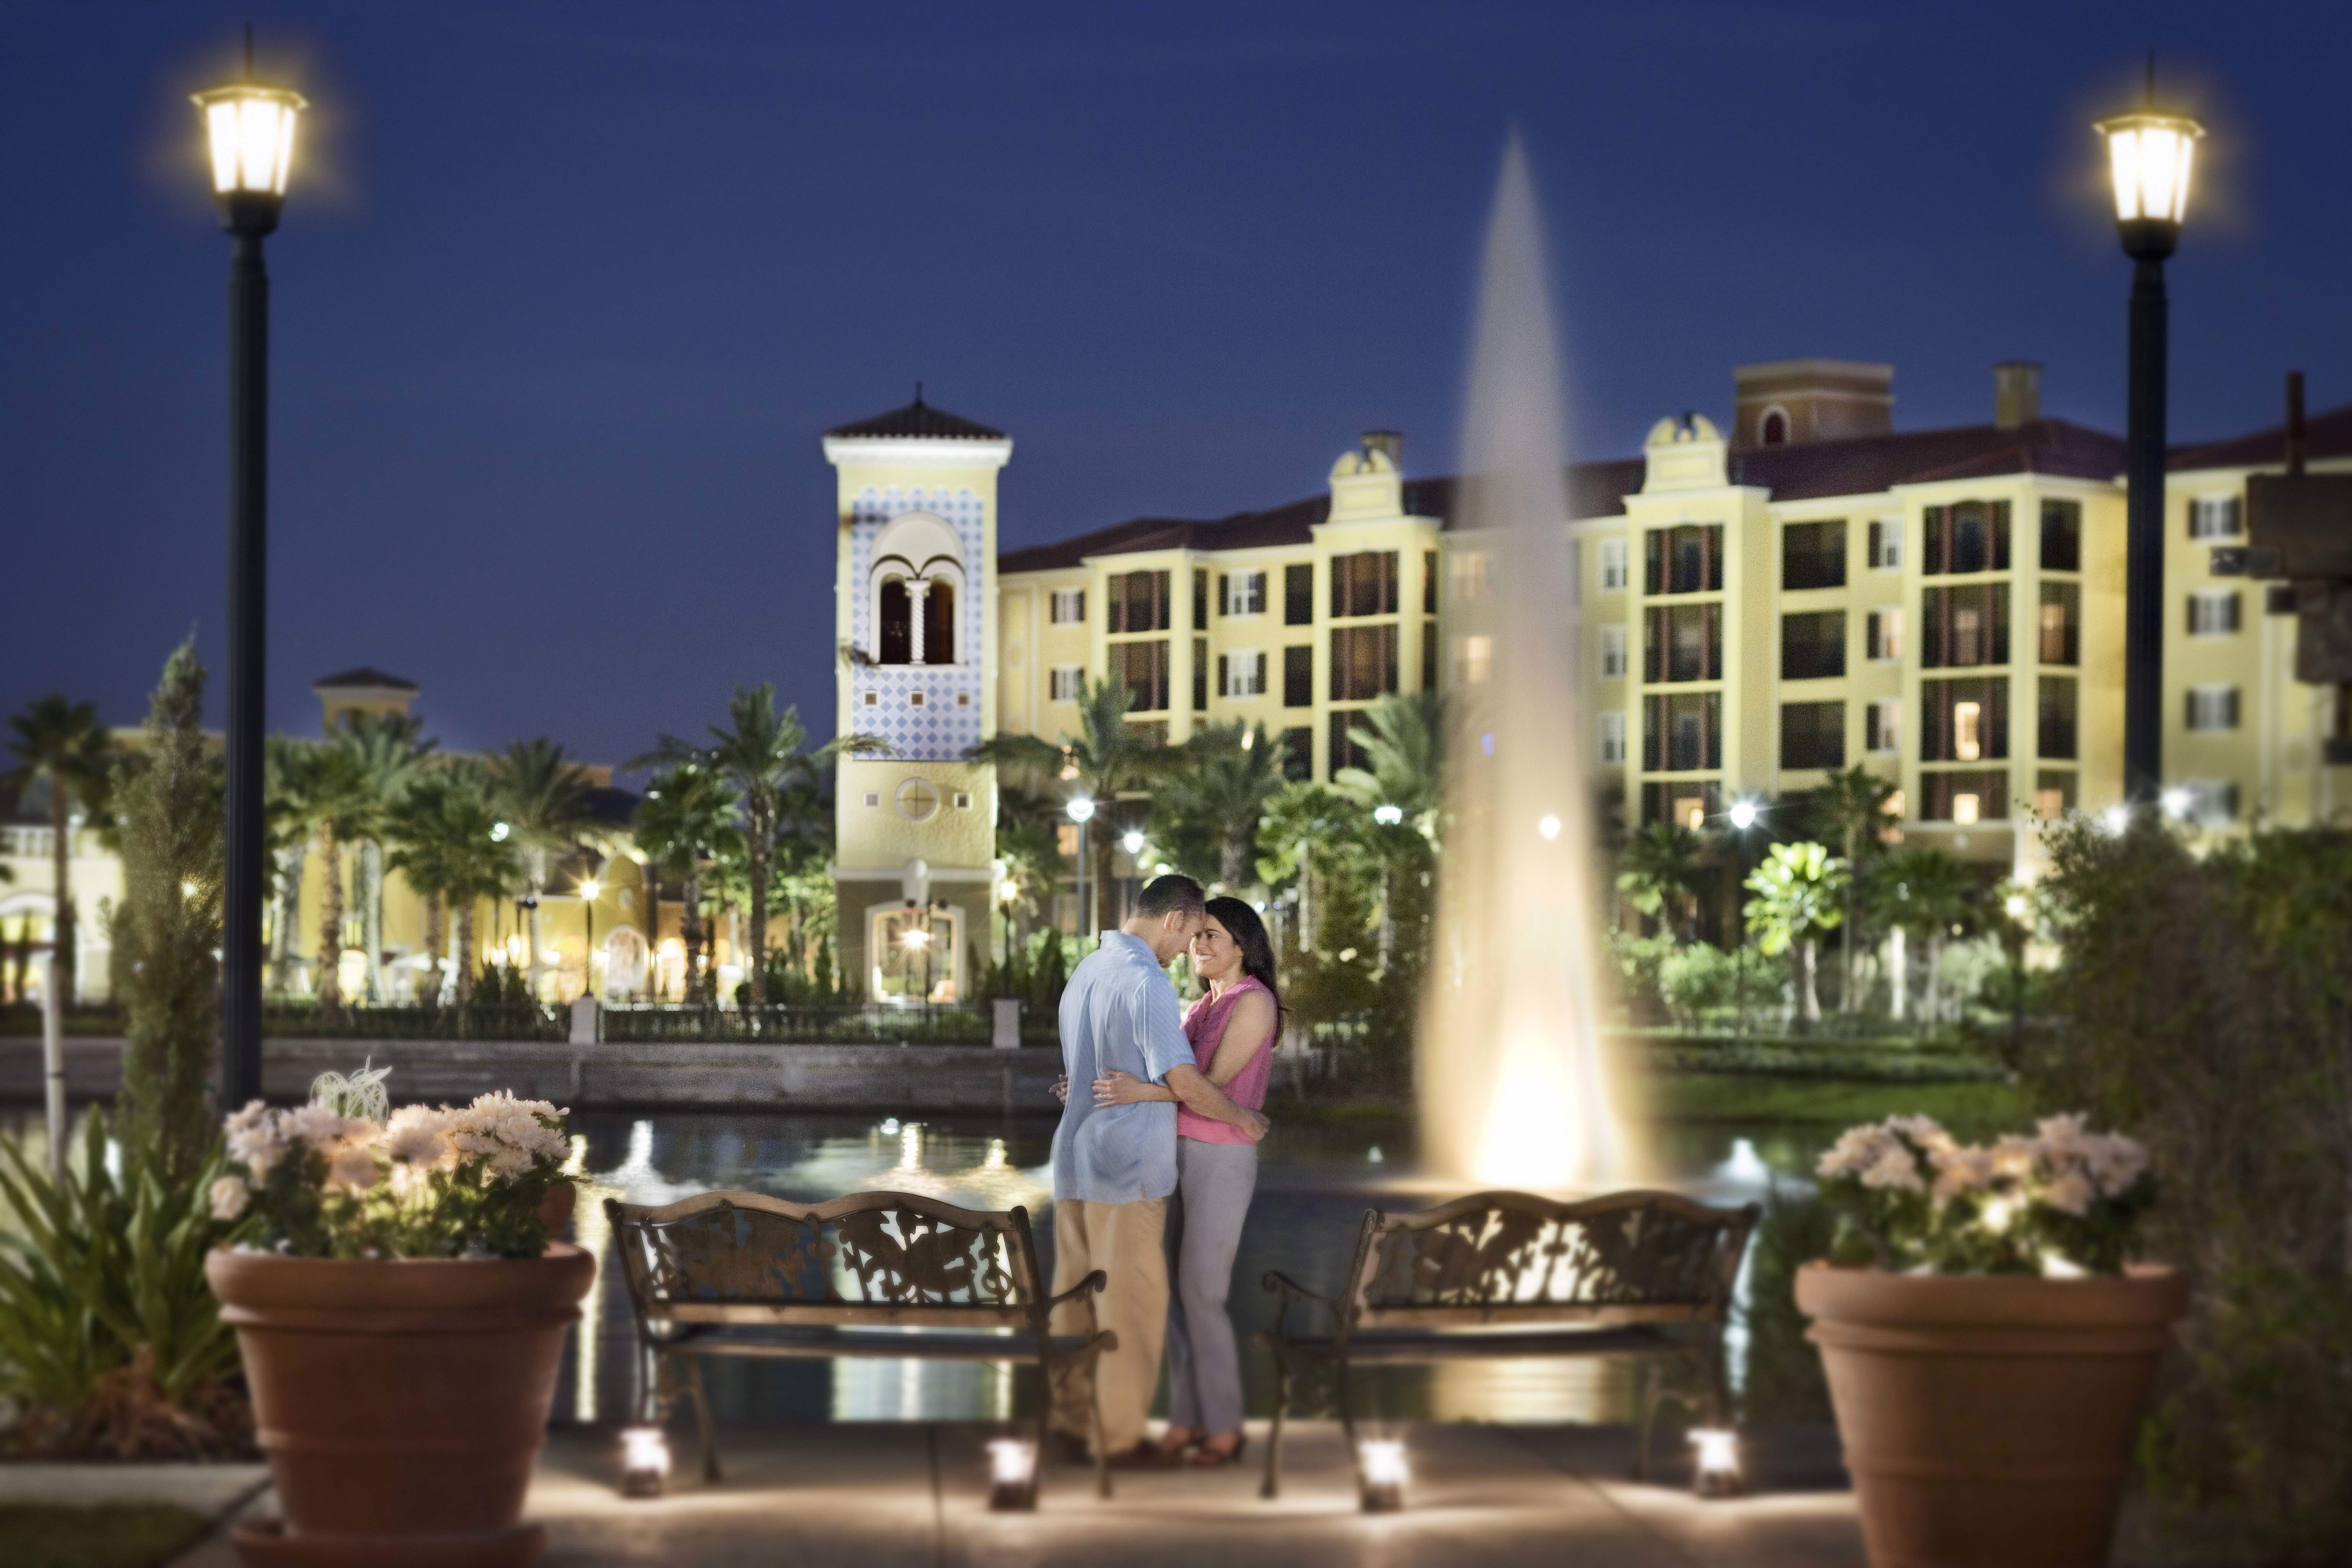 Hilton Grand Vacations at Tuscany Village Orlando Florida